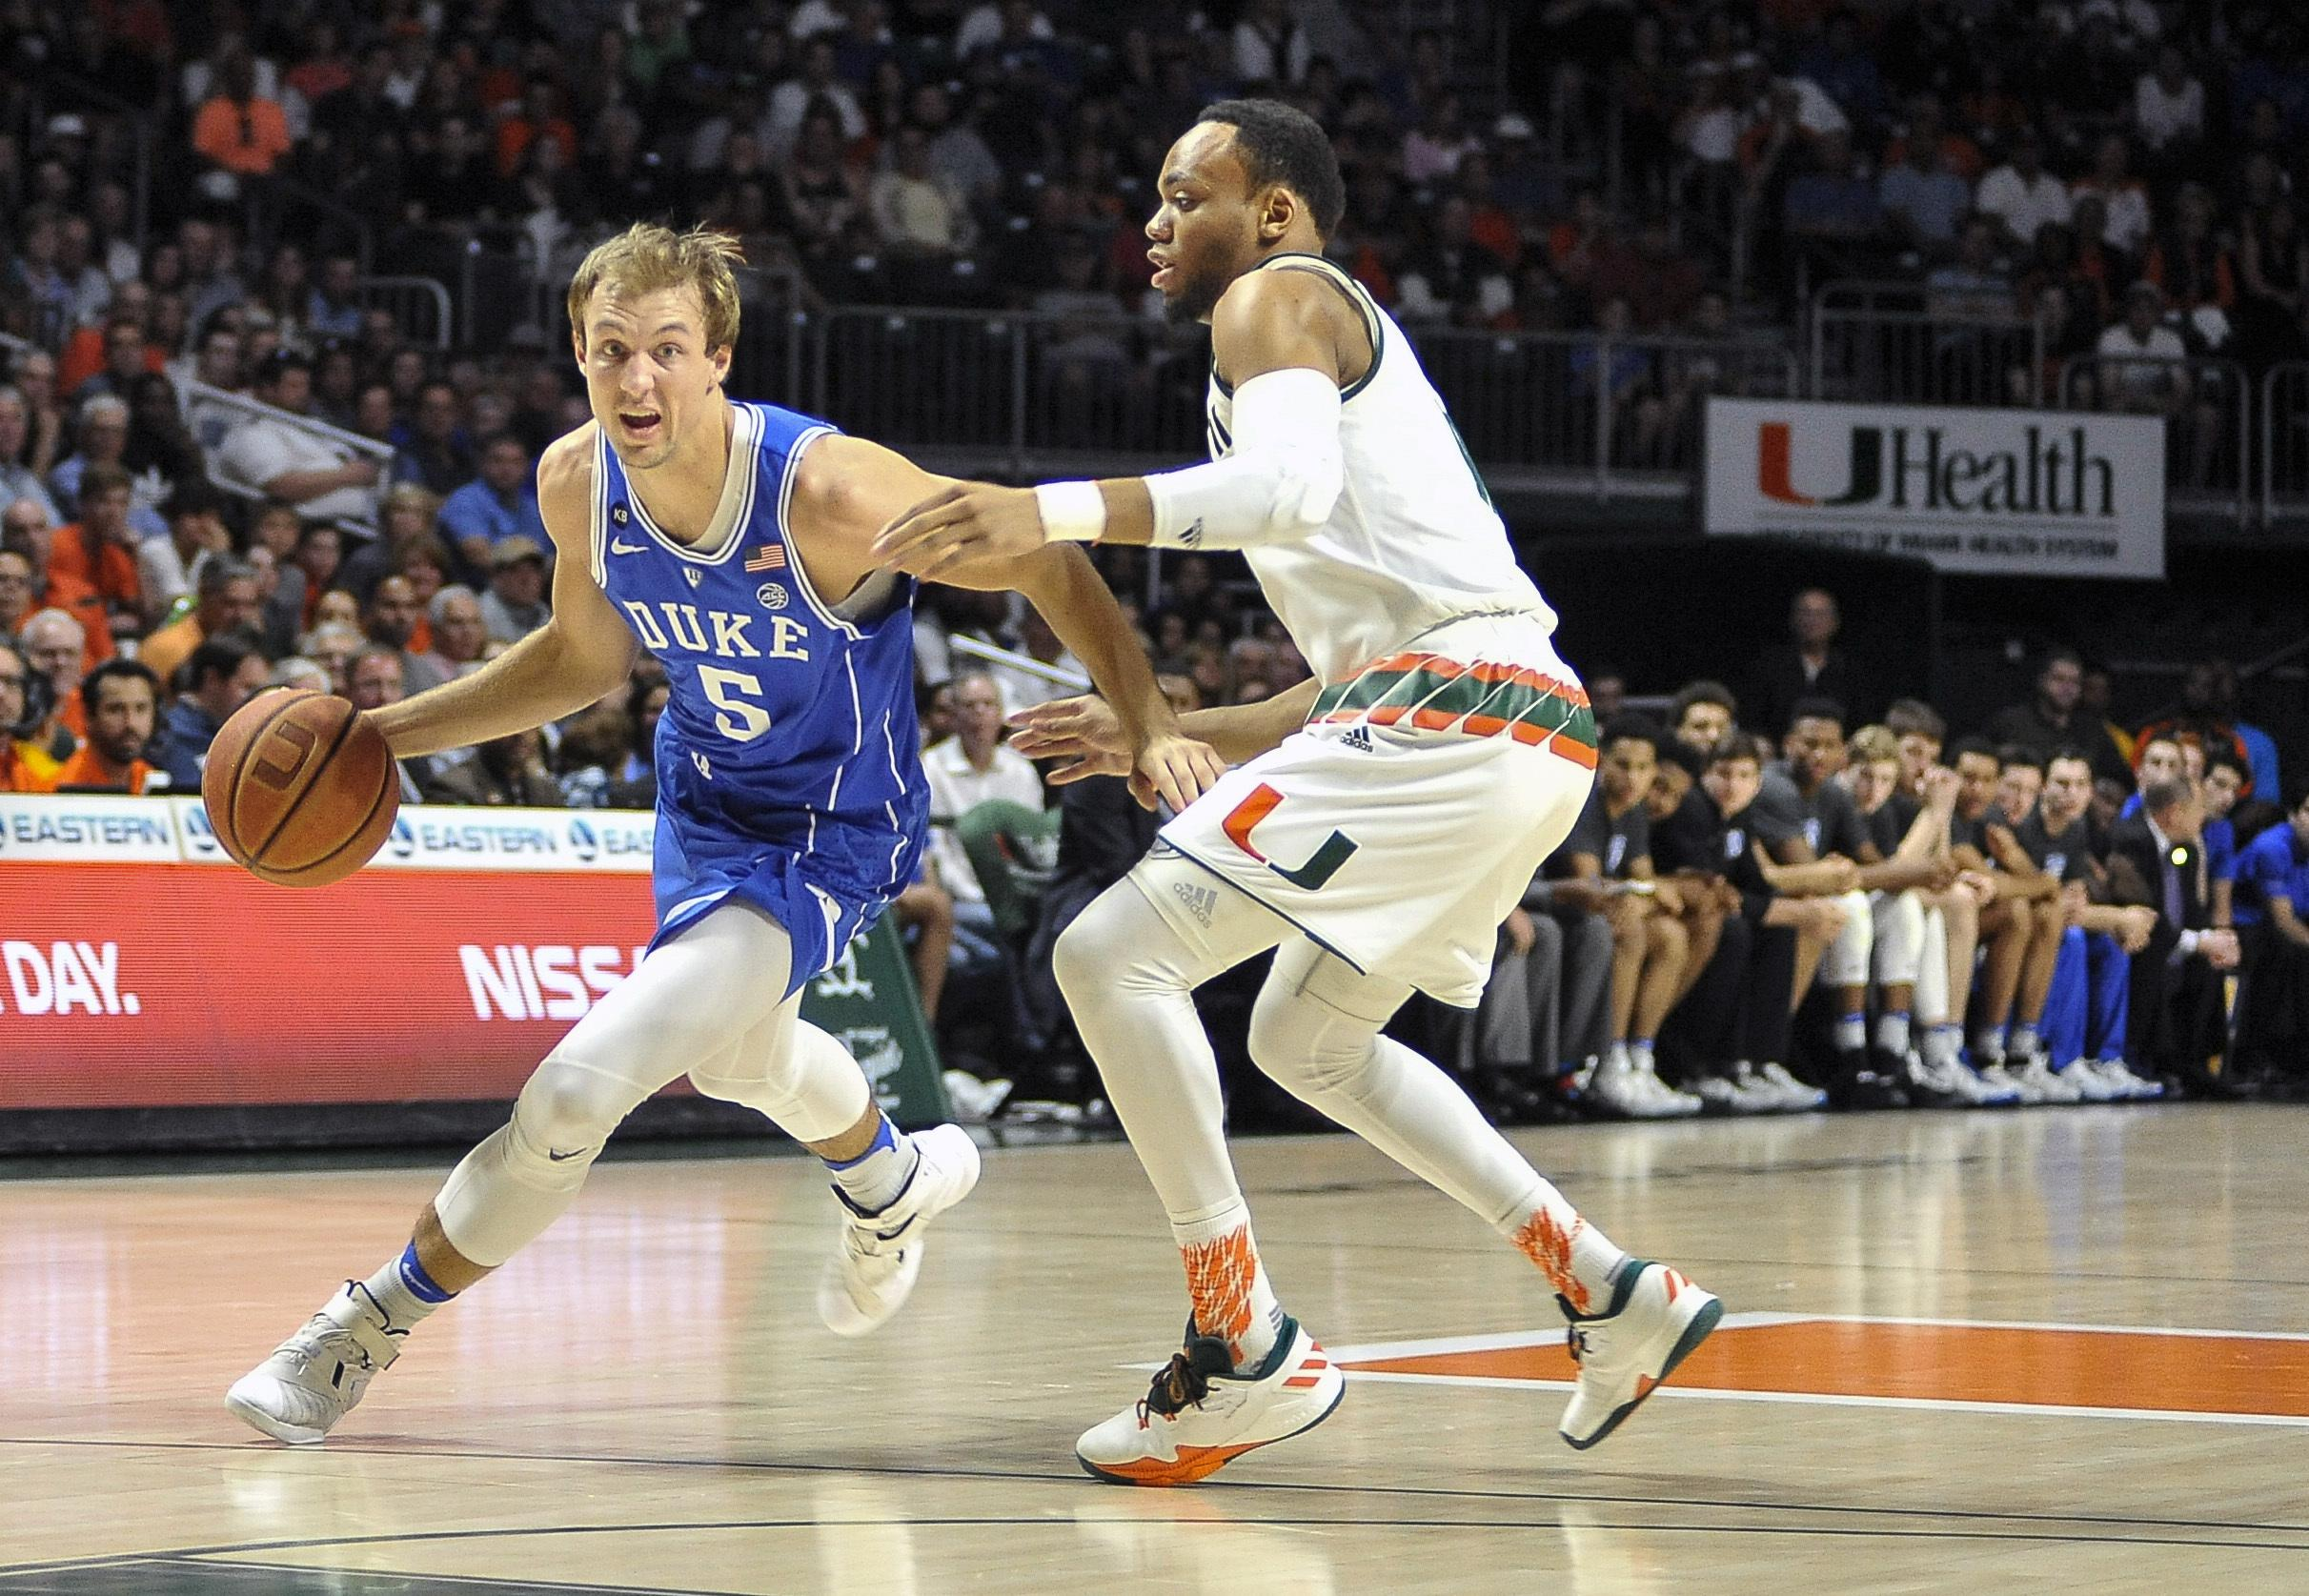 Duke_miami_basketball_33001